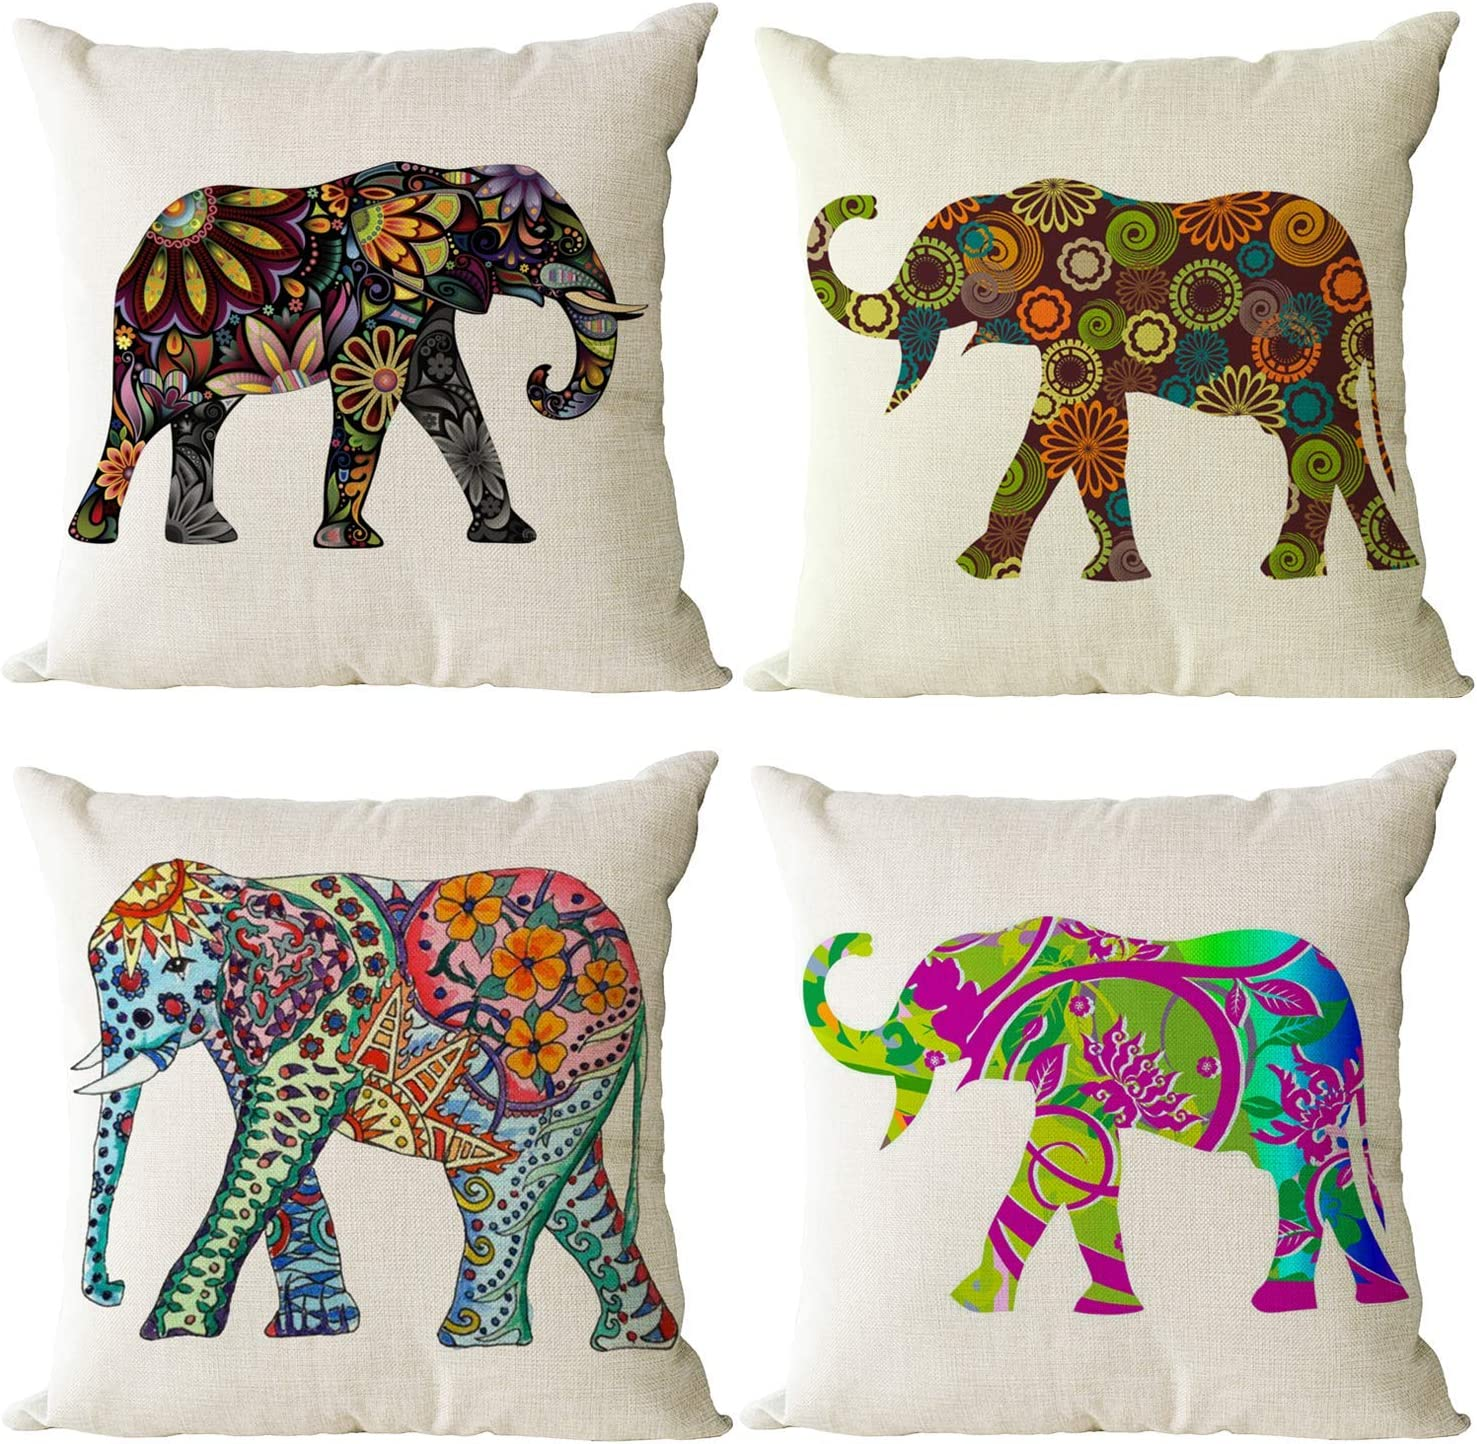 Amazon Com Yeeju Set Of 4 Elephant Decorative Throw Pillow Covers Square Cotton Linen Cushion Covers Outdoor Couch Sofa Home Pillow Cases 18x18 Inch Home Kitchen